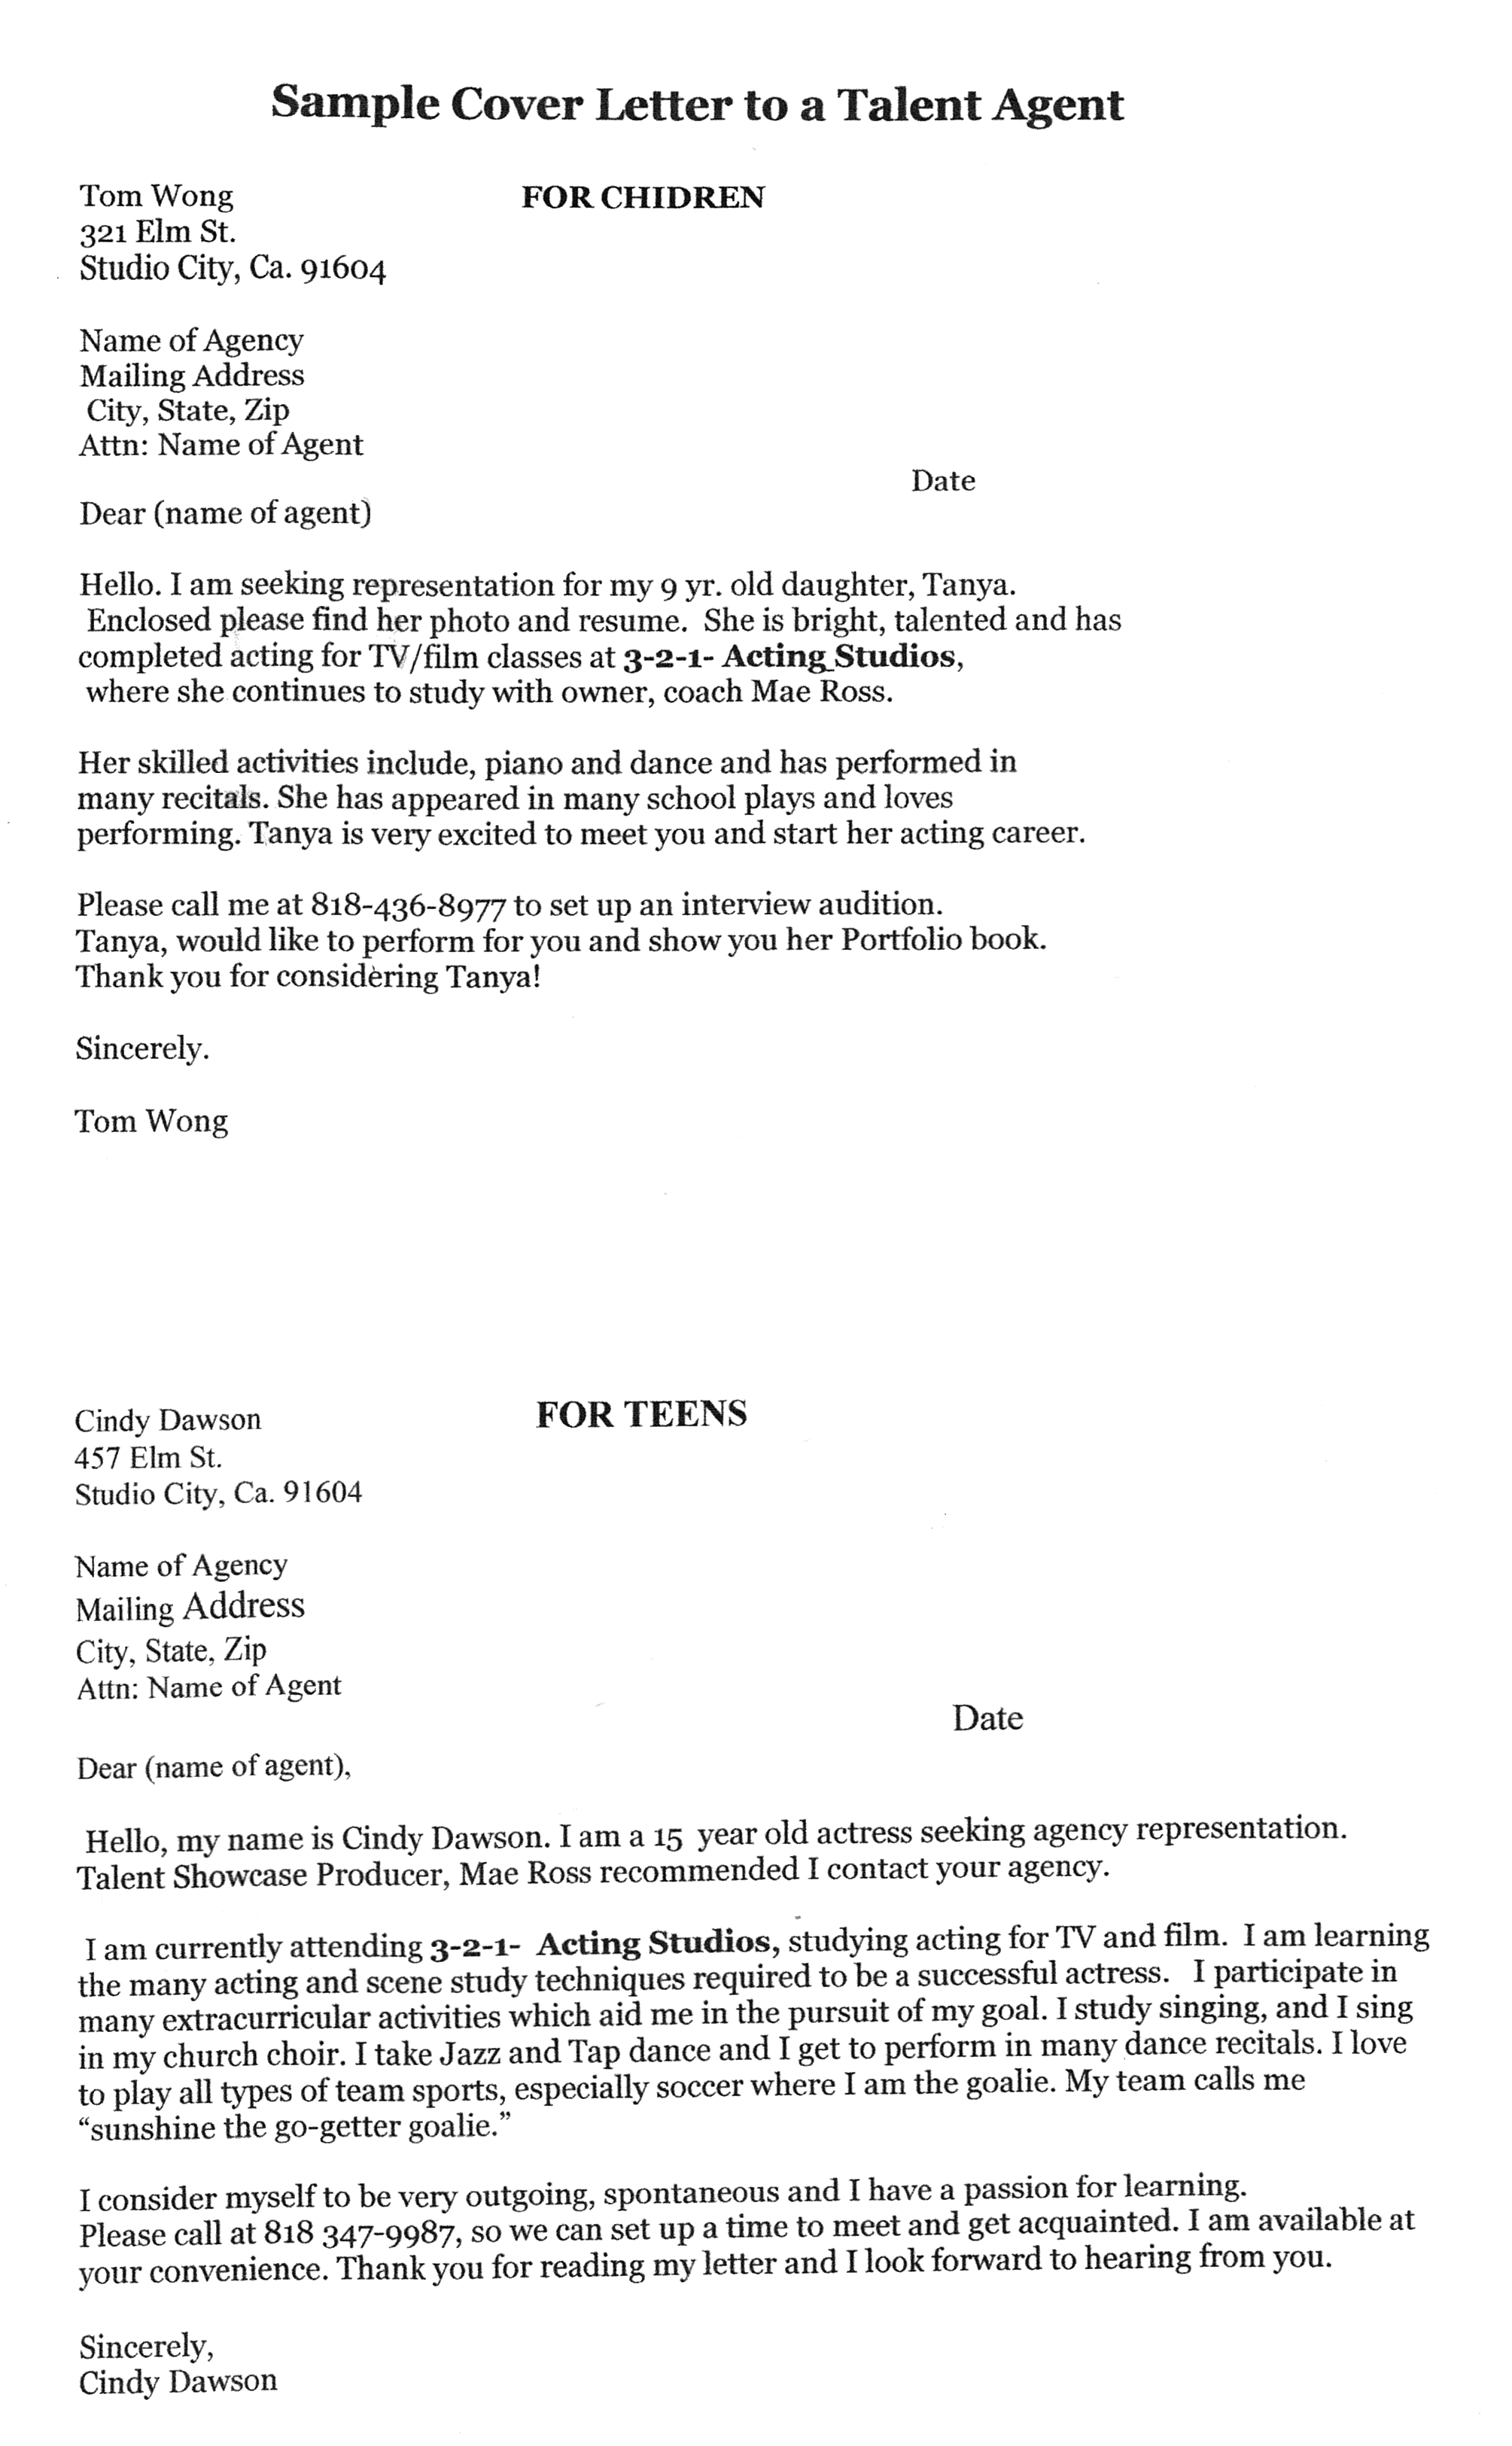 Sample Actor Cover Letter good sample cover letters to talent agents